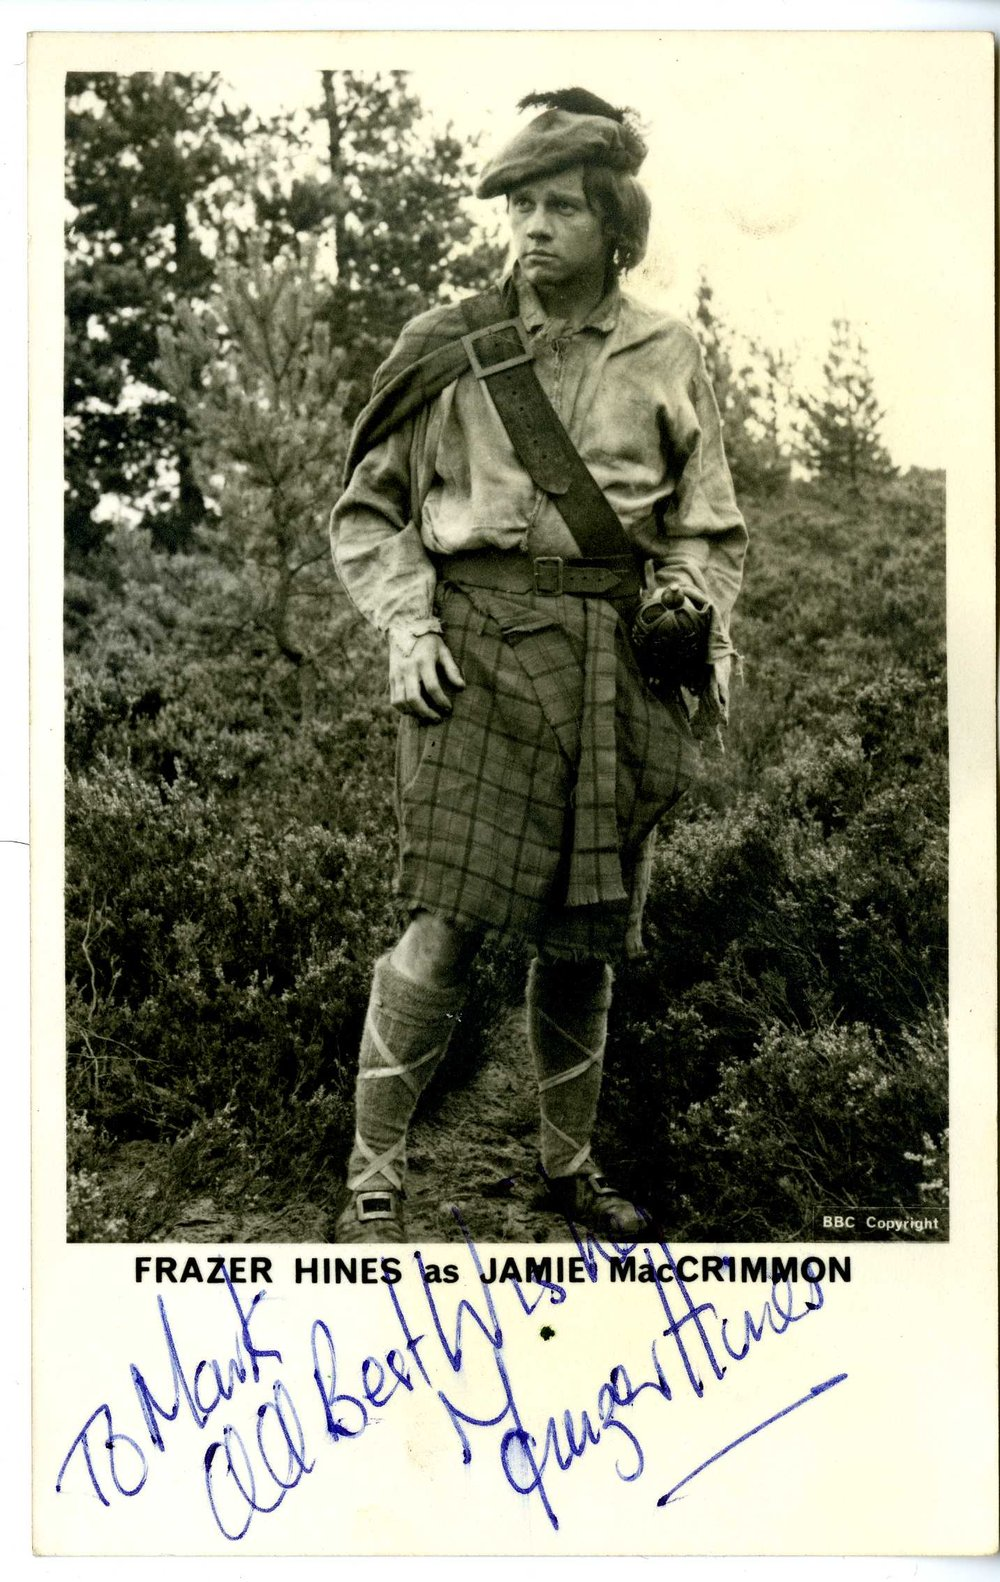 BBC Cast Card of Frazer Hines as Jamie McCrimmon